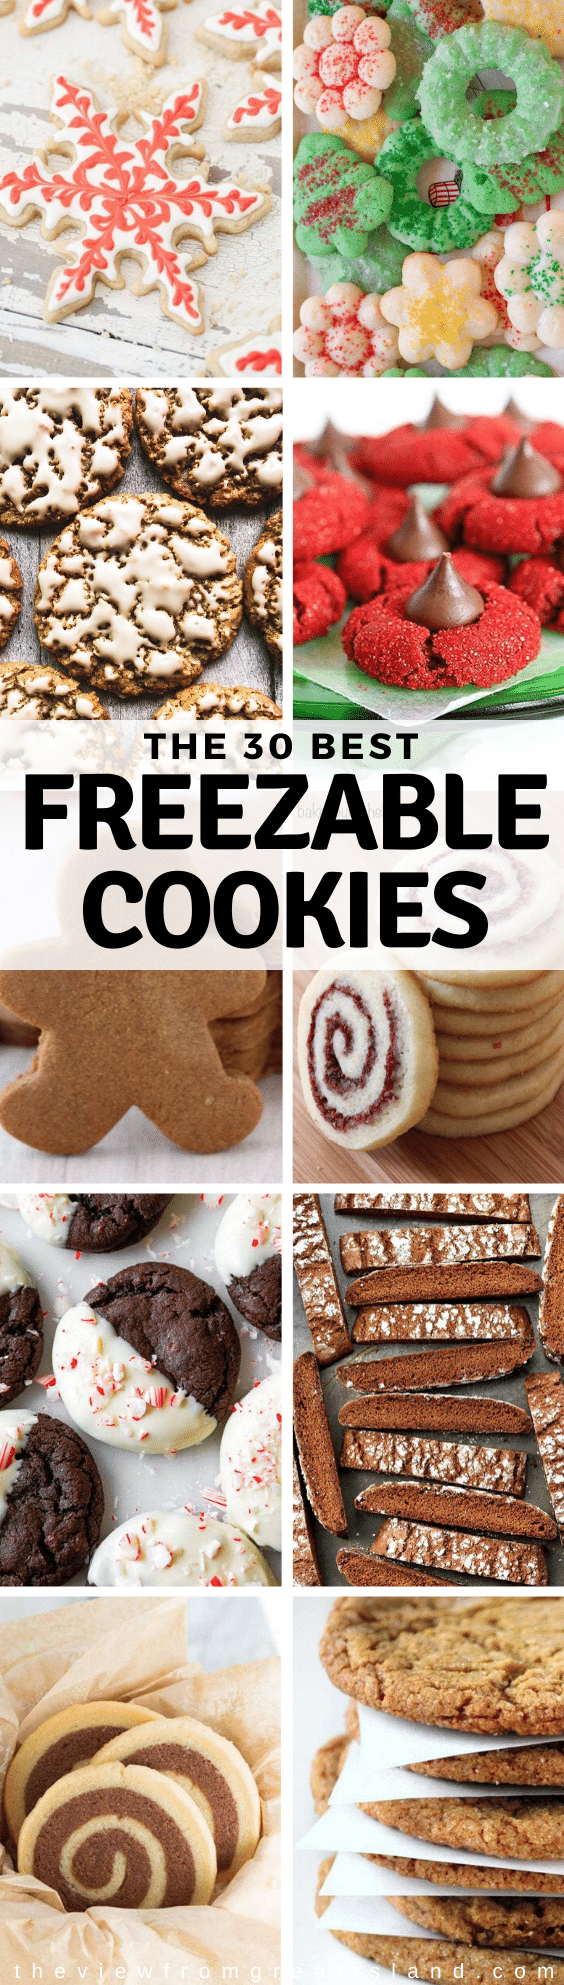 best freezable cookies pin